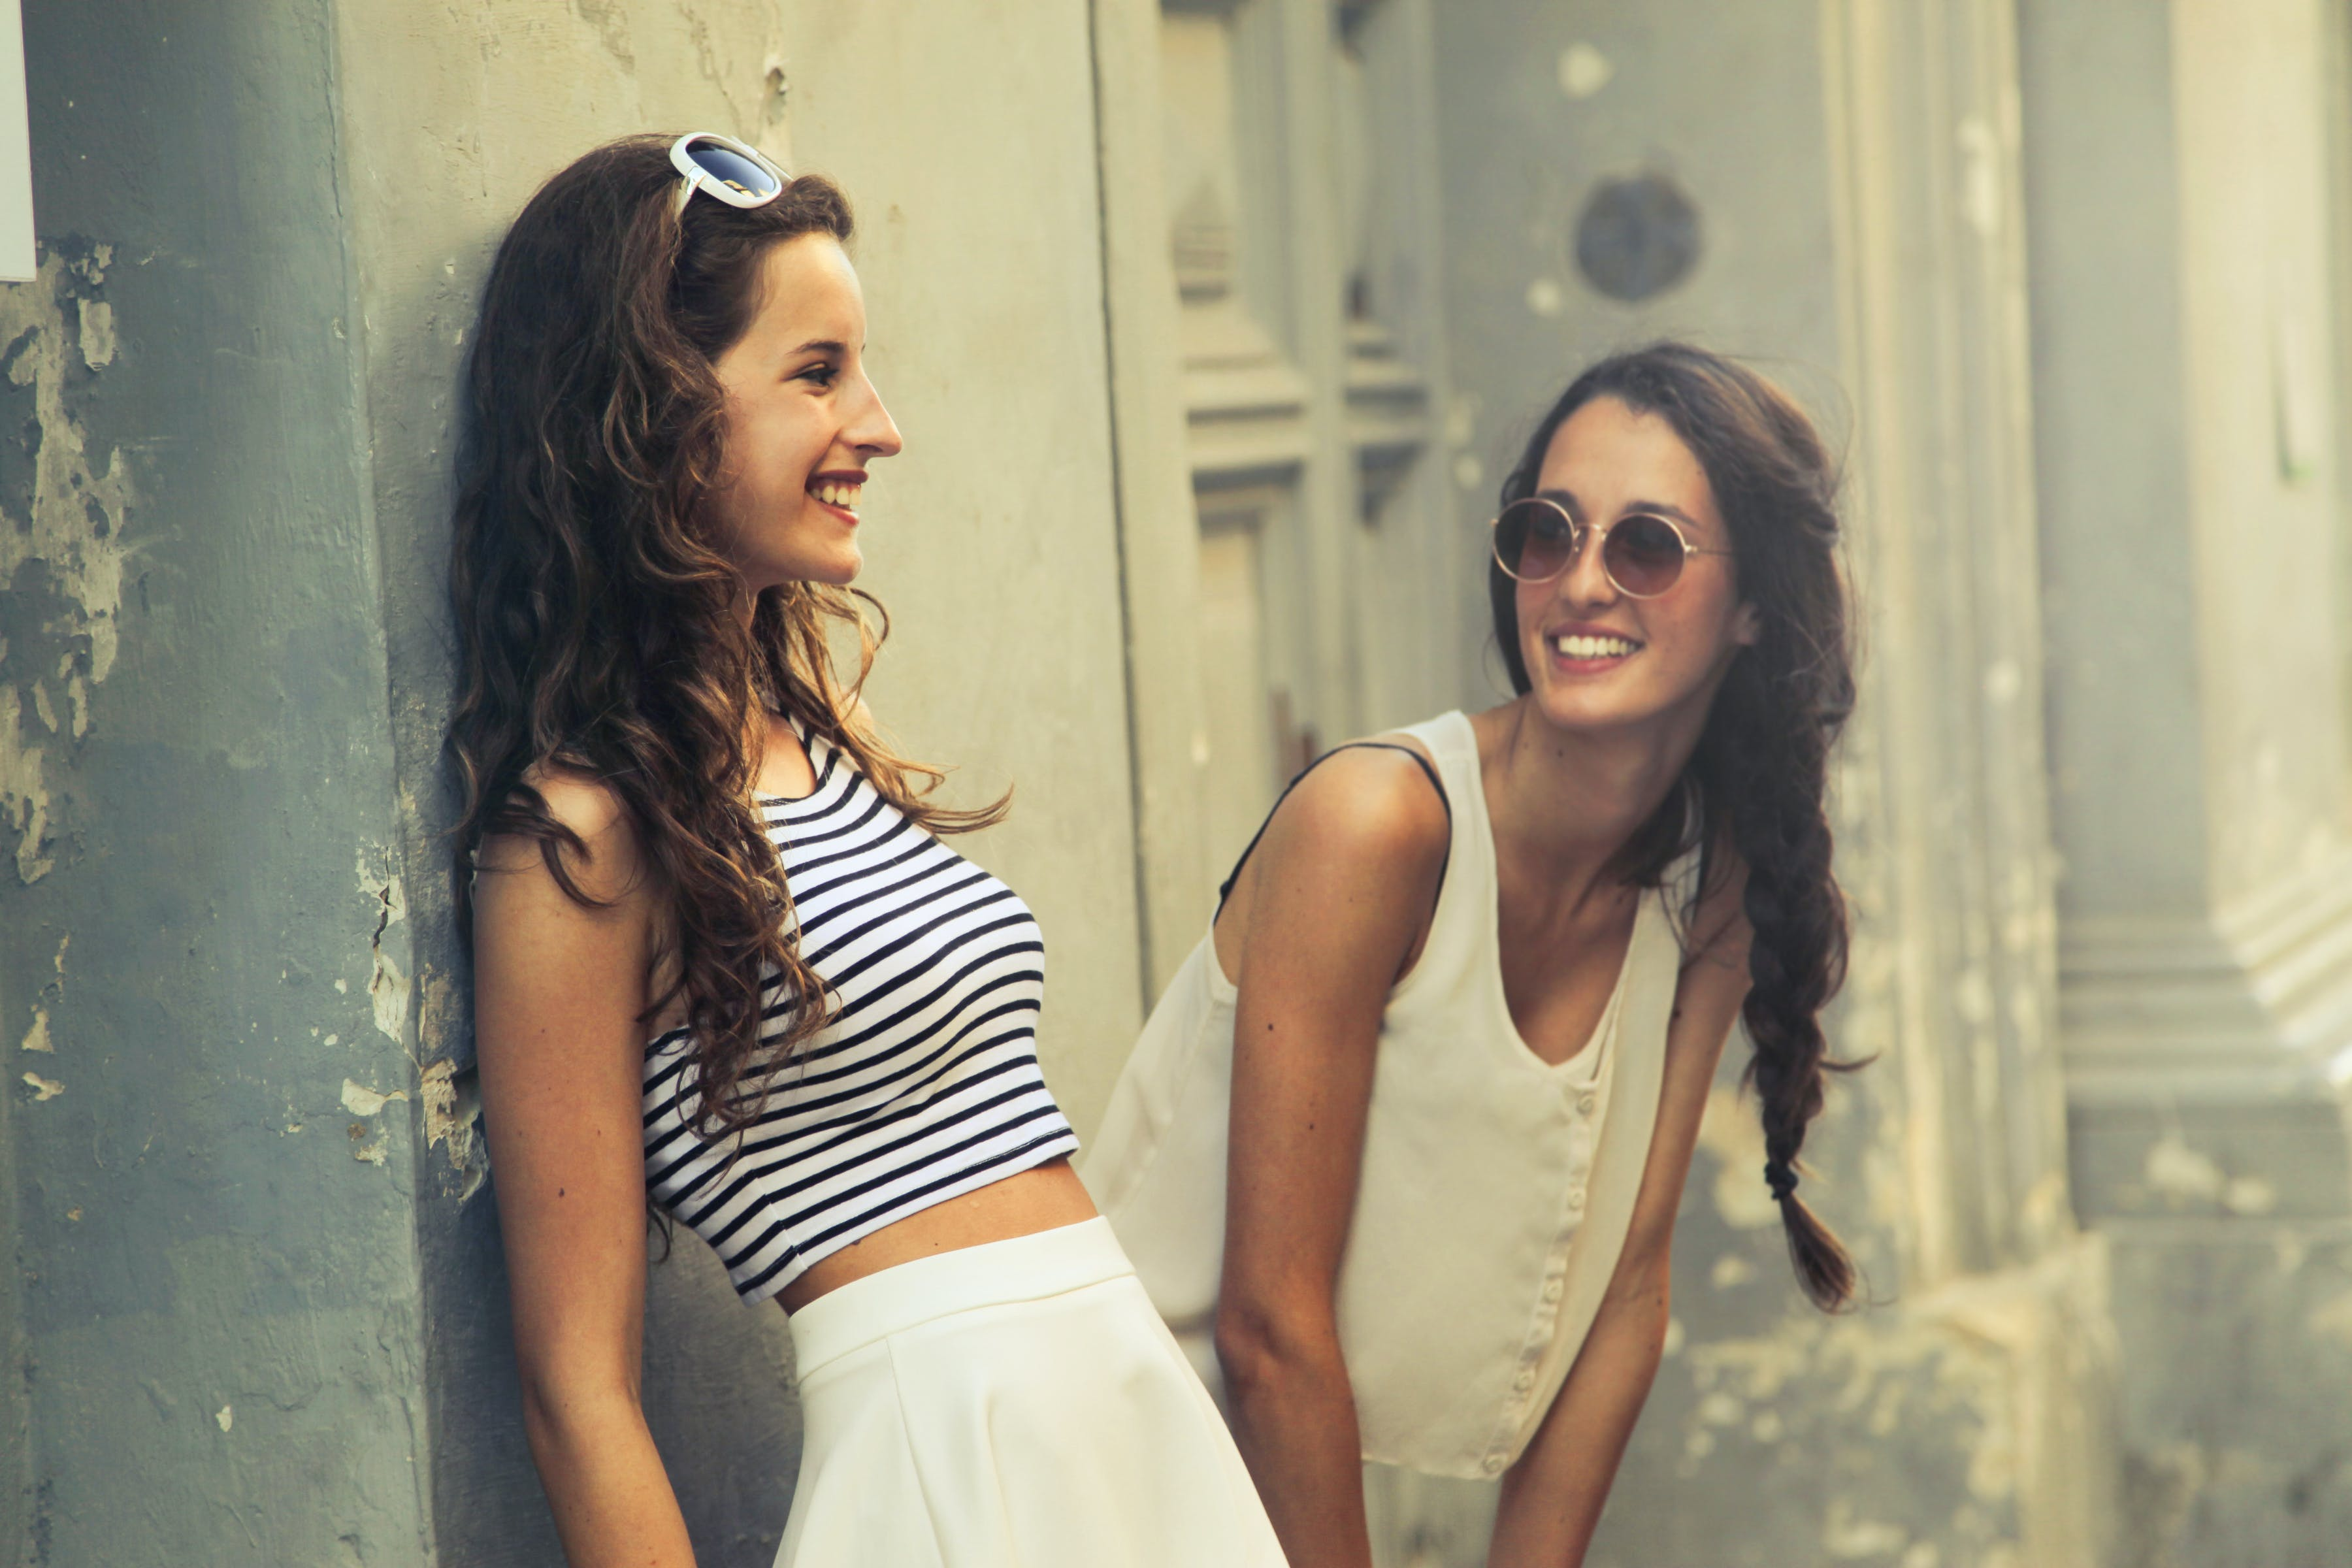 Two Women With White Sunglasses